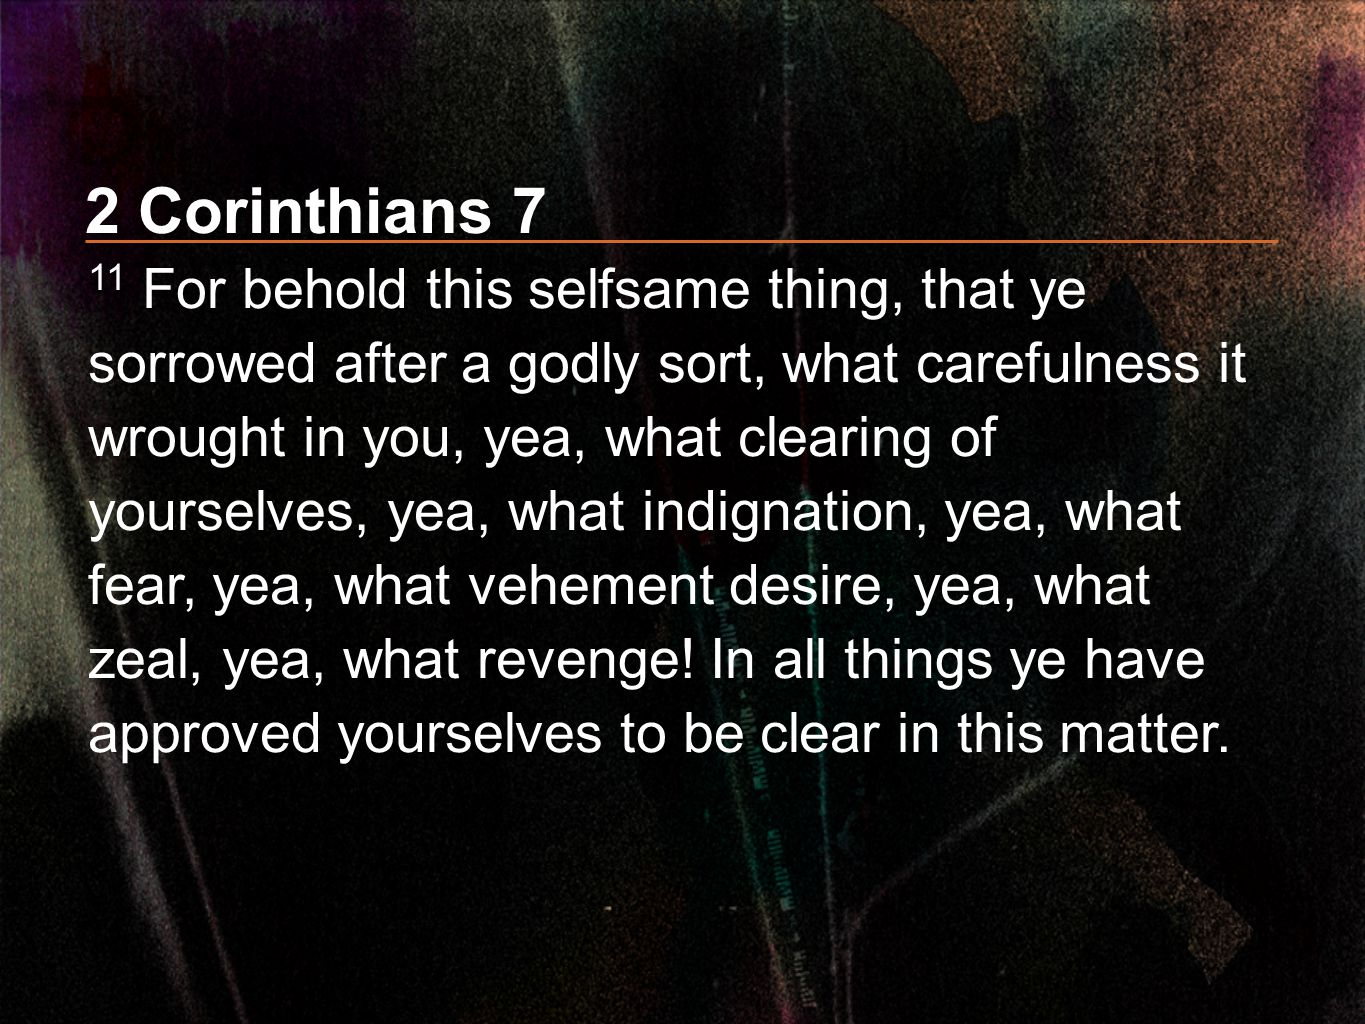 2 Corinthians 7 11 For behold this selfsame thing, that ye sorrowed after a godly sort, what carefulness it wrought in you, yea, what clearing of your